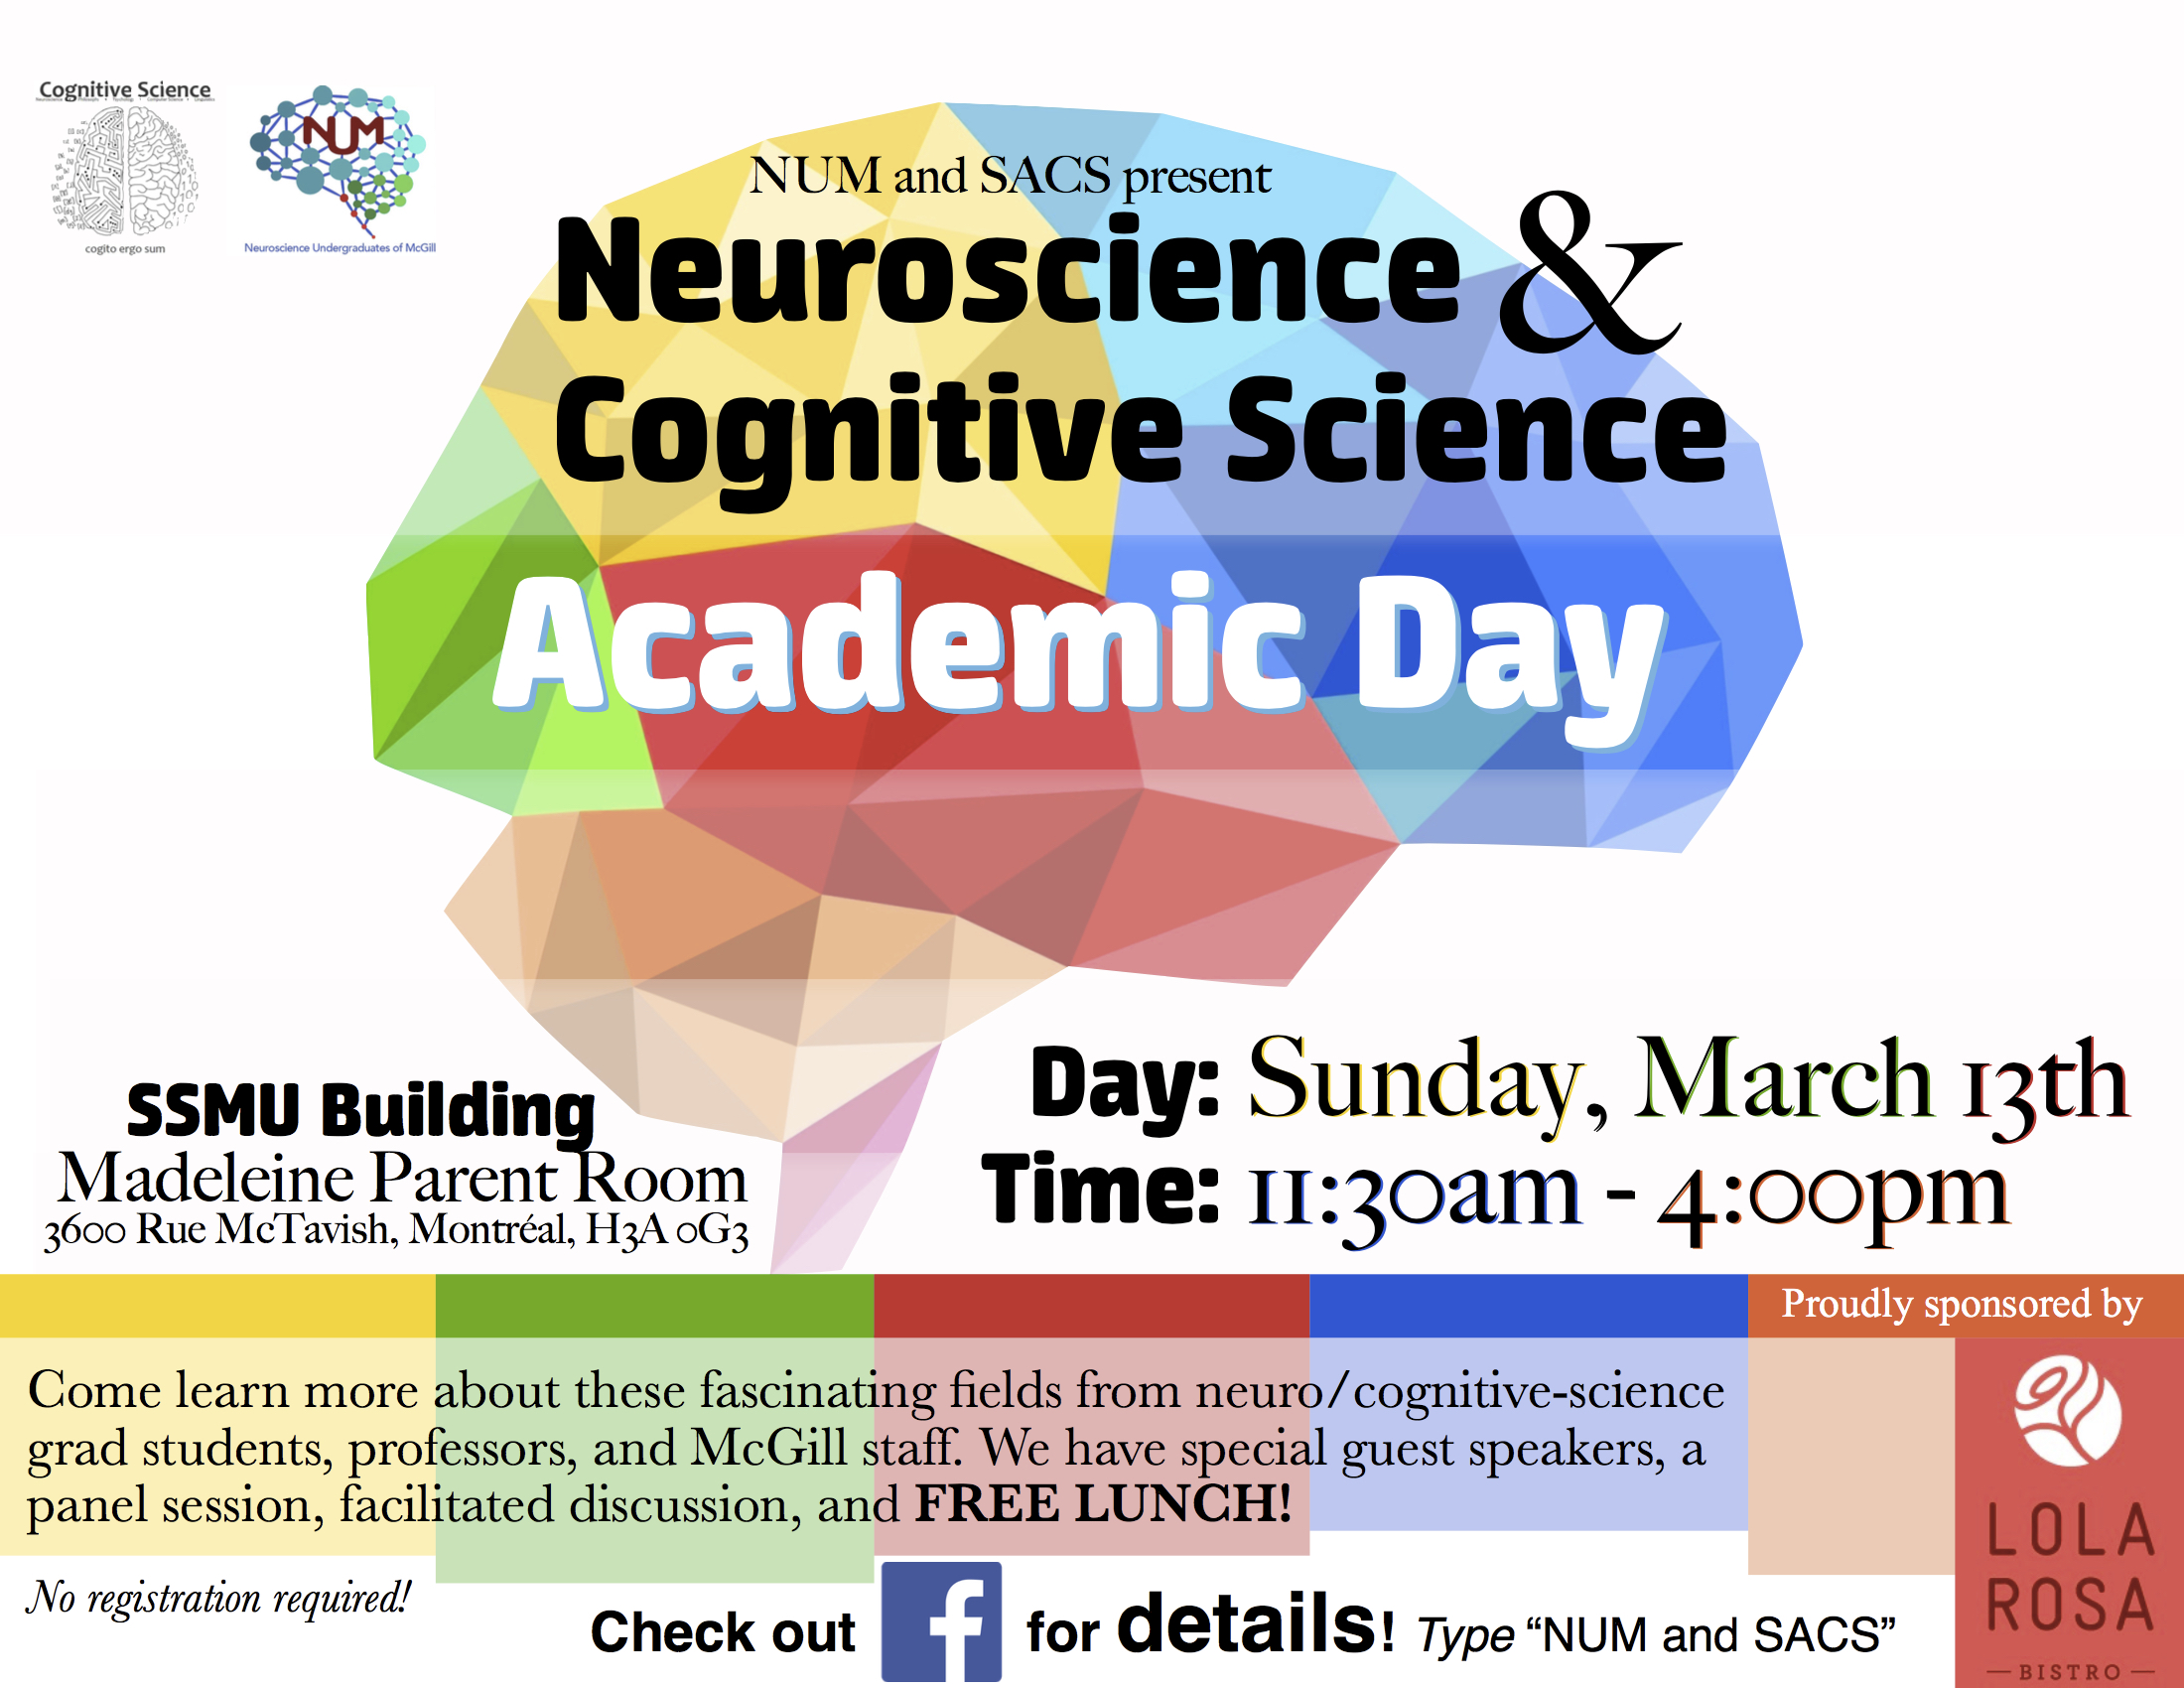 Neuro_&_CogSci_Academic_Day_Poster